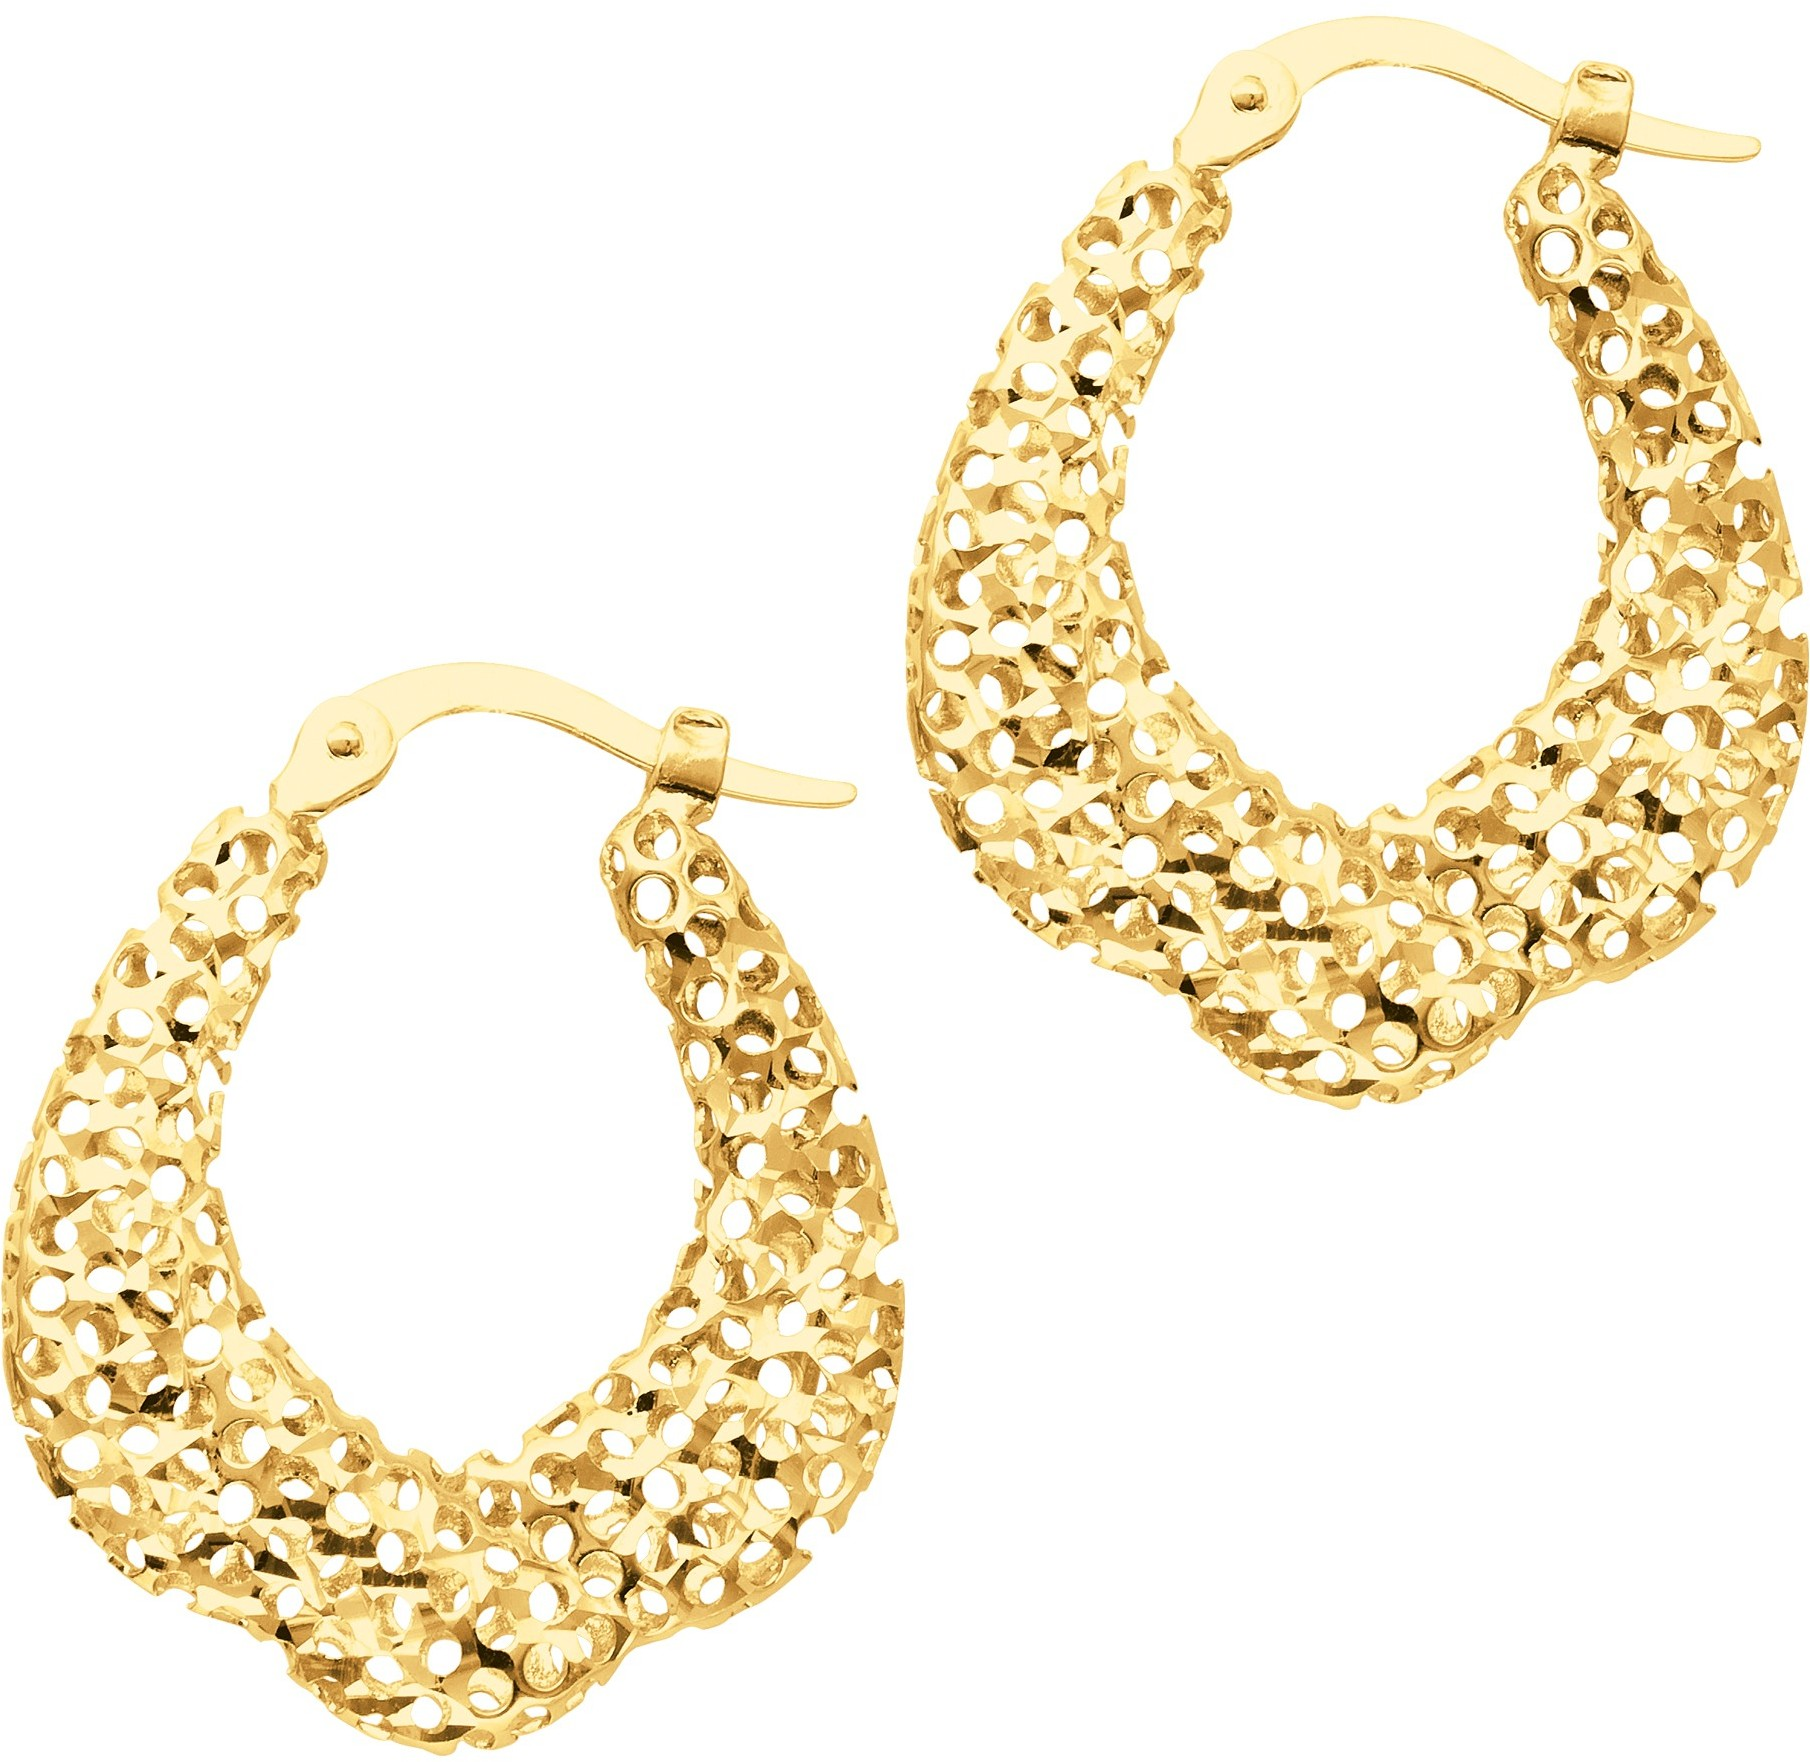 14K Yellow Gold Textured Polished Round Graduated Hoop Sparkle Earrings